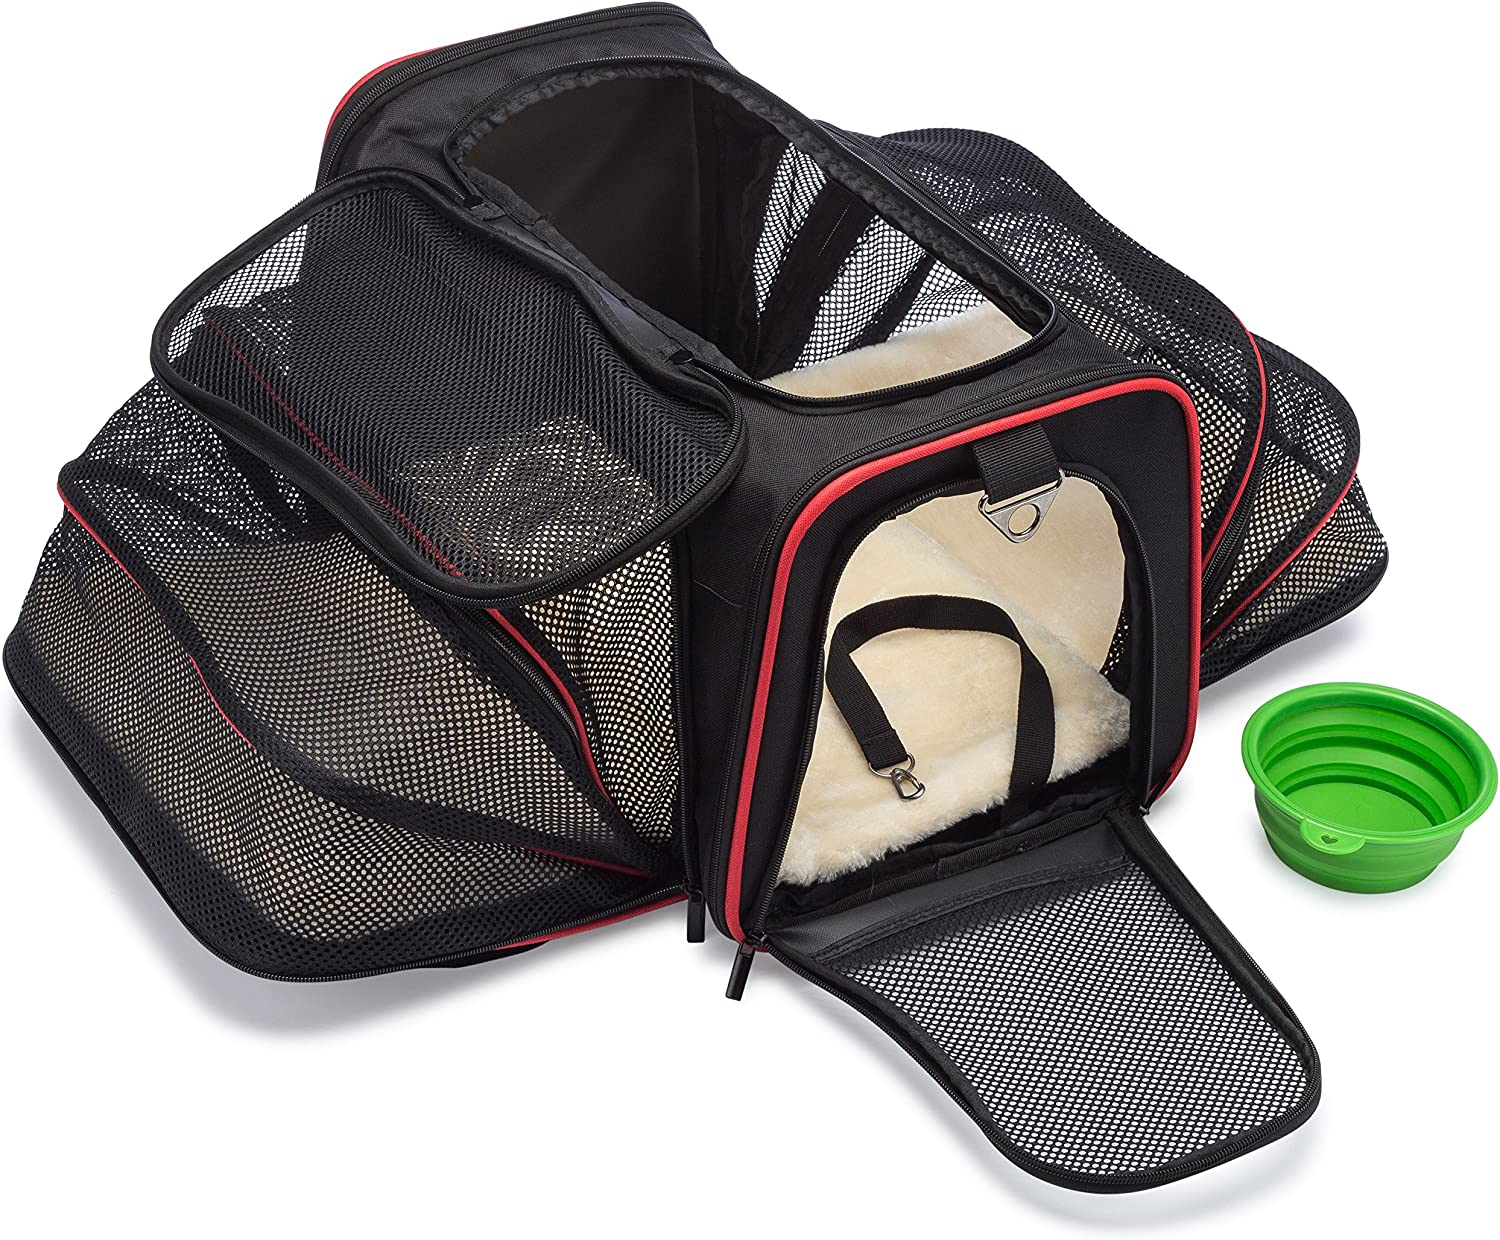 mypal Expandable Soft Pet Carrier, Airline Approved Carrier for Easy Carry On Luggage. for Small Dogs, Puppies, Cats, Kittens, and More